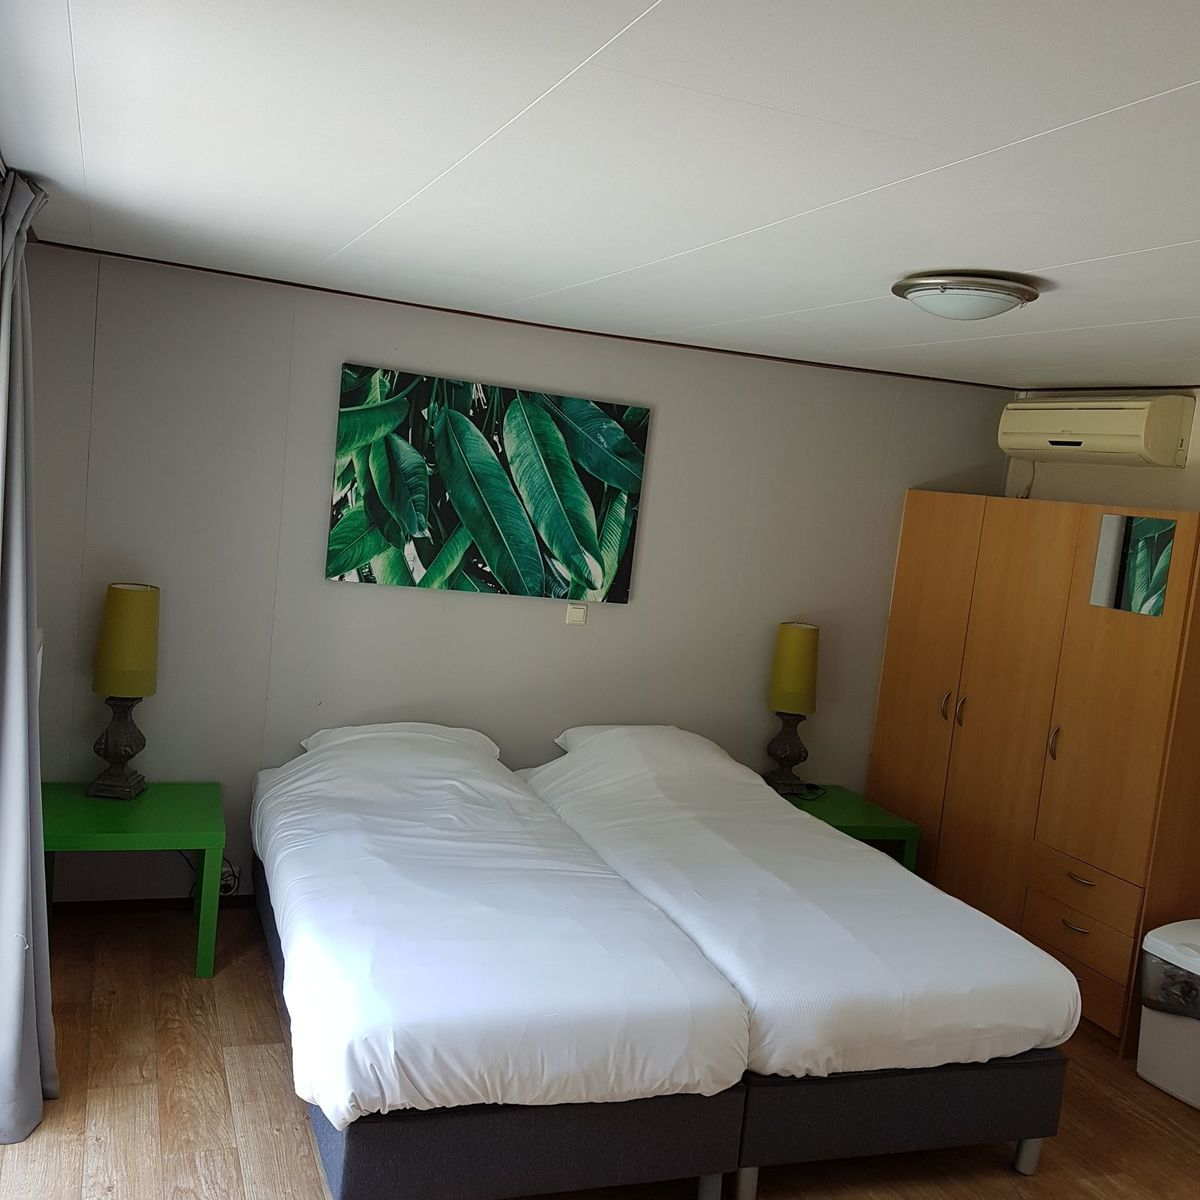 Hotel chalet rooms